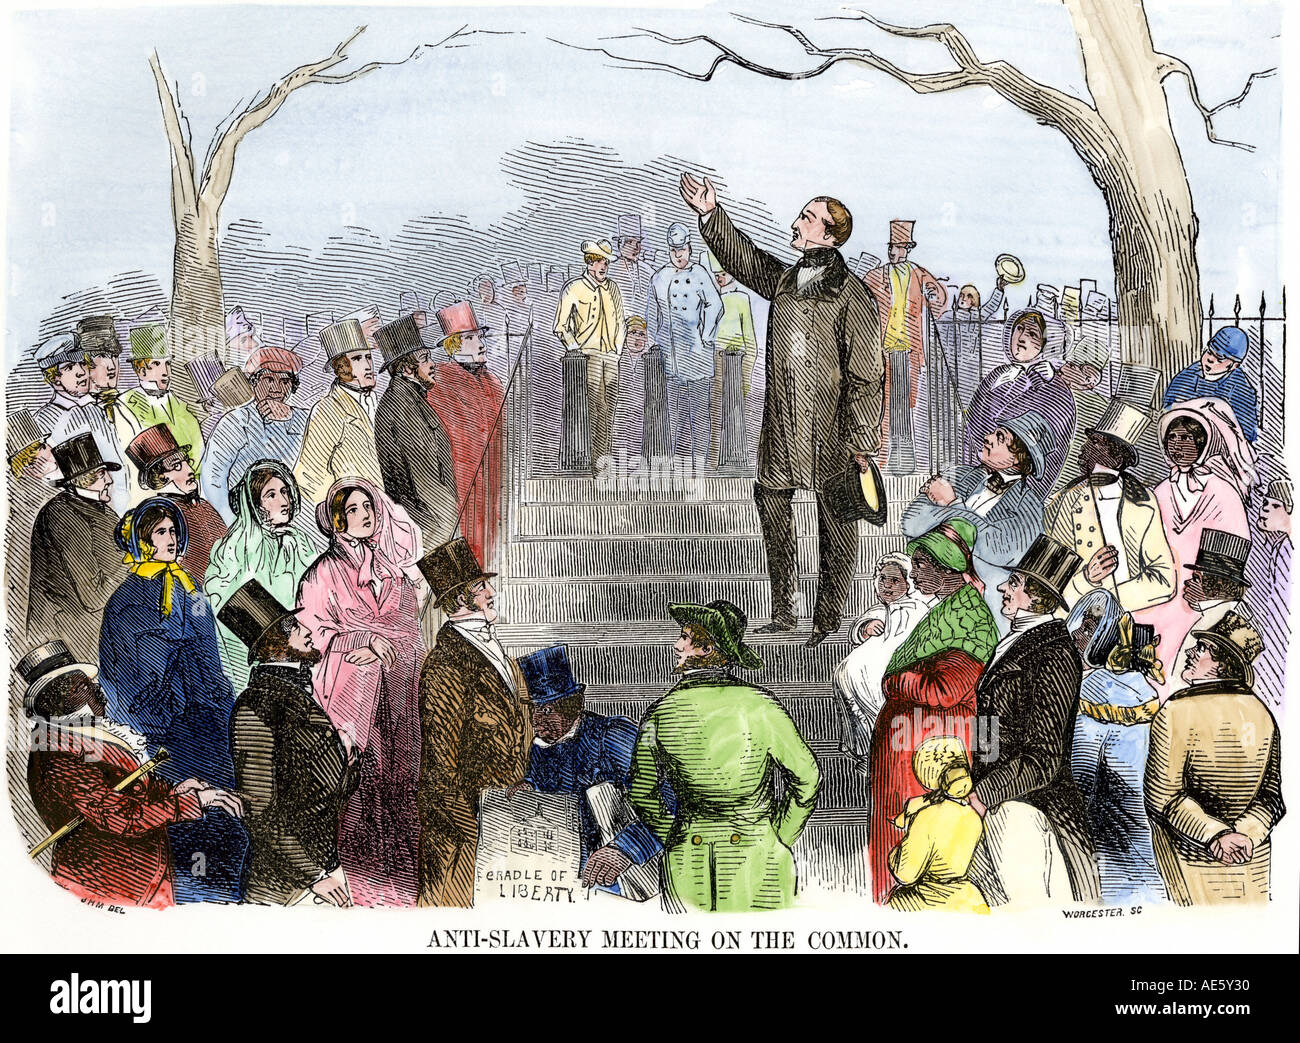 Wendell Phillips speaking against slavery on Boston Common 1850s. Hand-colored woodcut - Stock Image